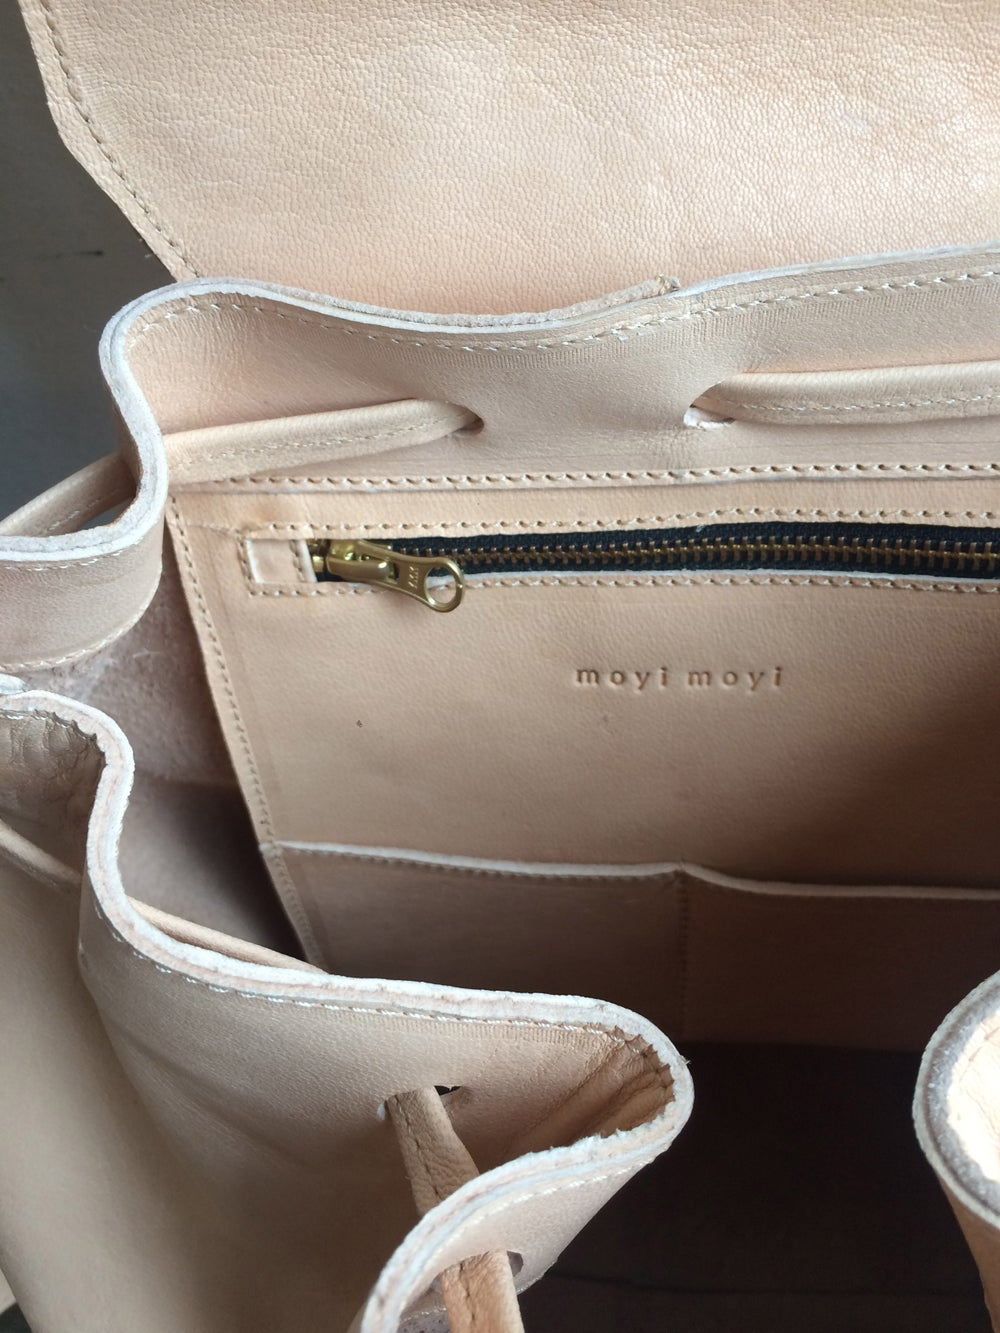 Image of Moyi Moyi Nude Leather Backpack